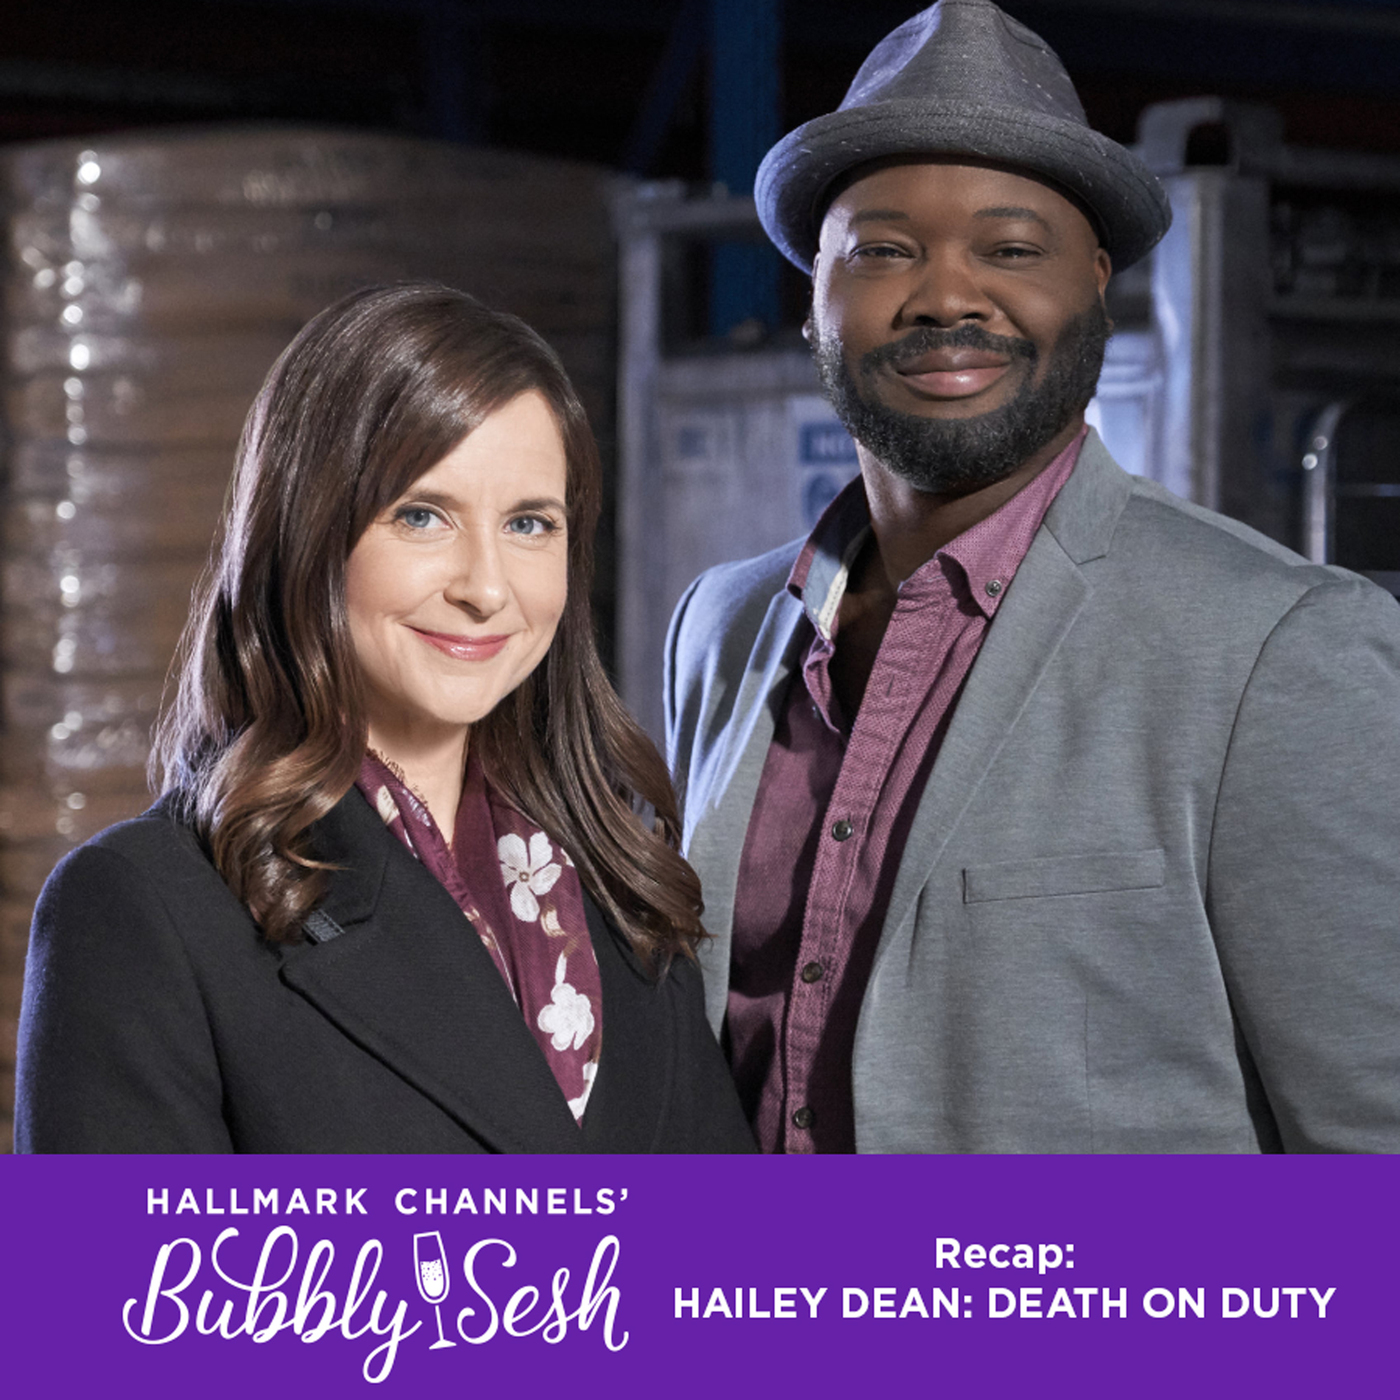 Hailey Dean: Death on Duty Recap